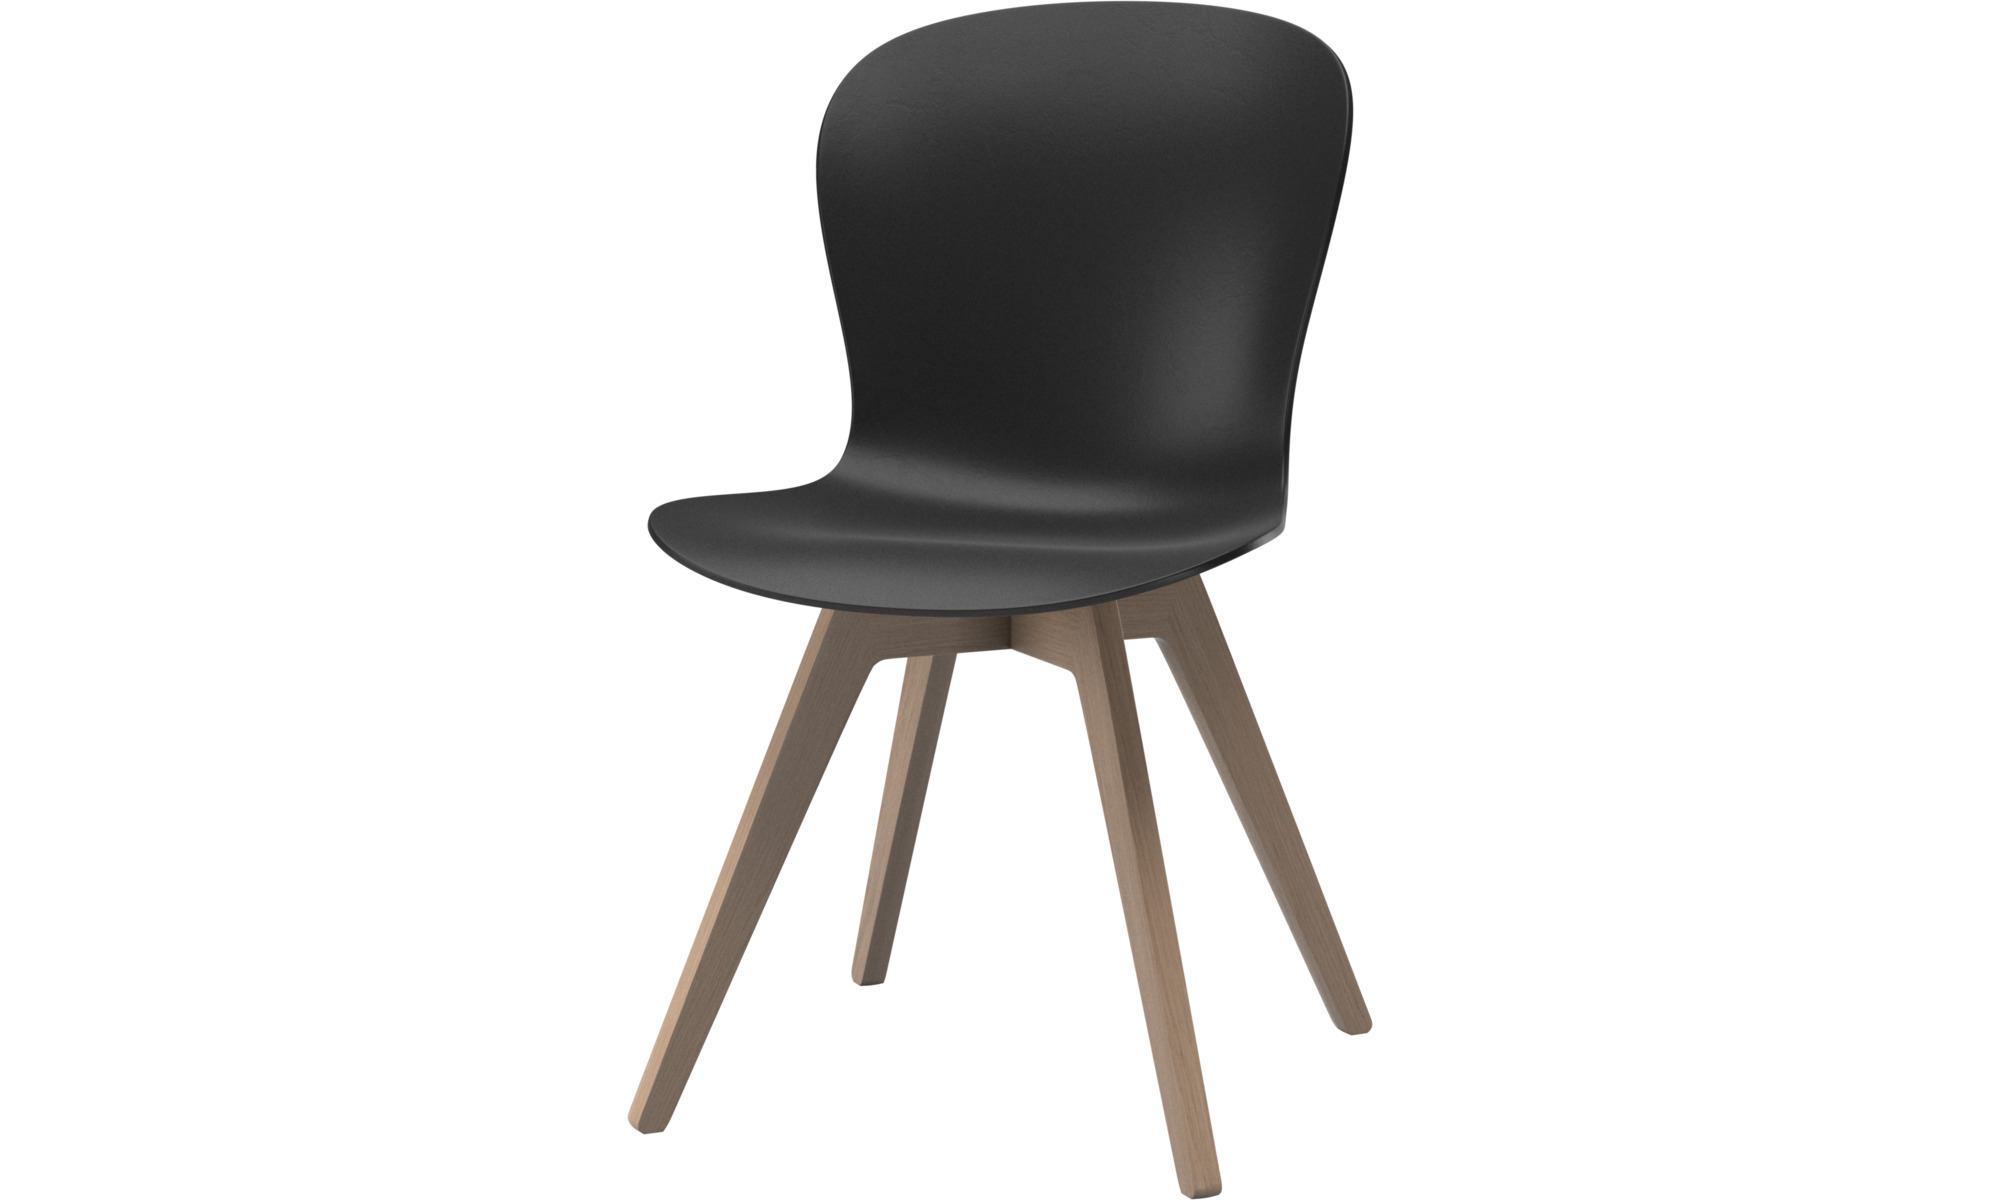 Dining chairs - Adelaide chair - Black - Oak